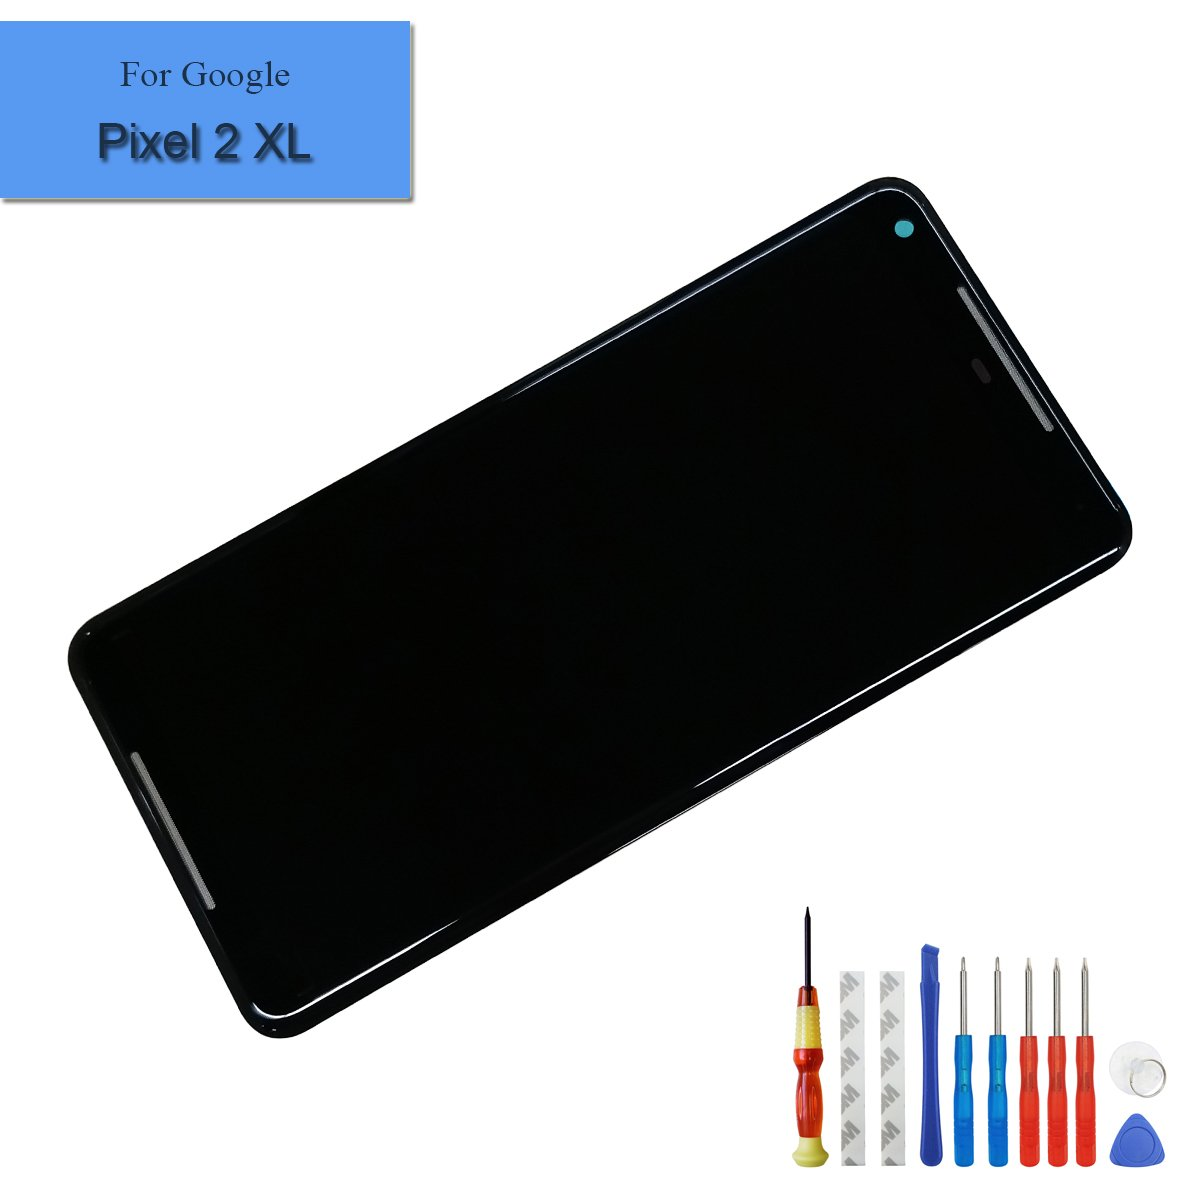 for Google Pixel 2 XL Amoled Touch Screen 6.0'' Display Assembly Digitizer Glass LCD with Adhesive+Tools